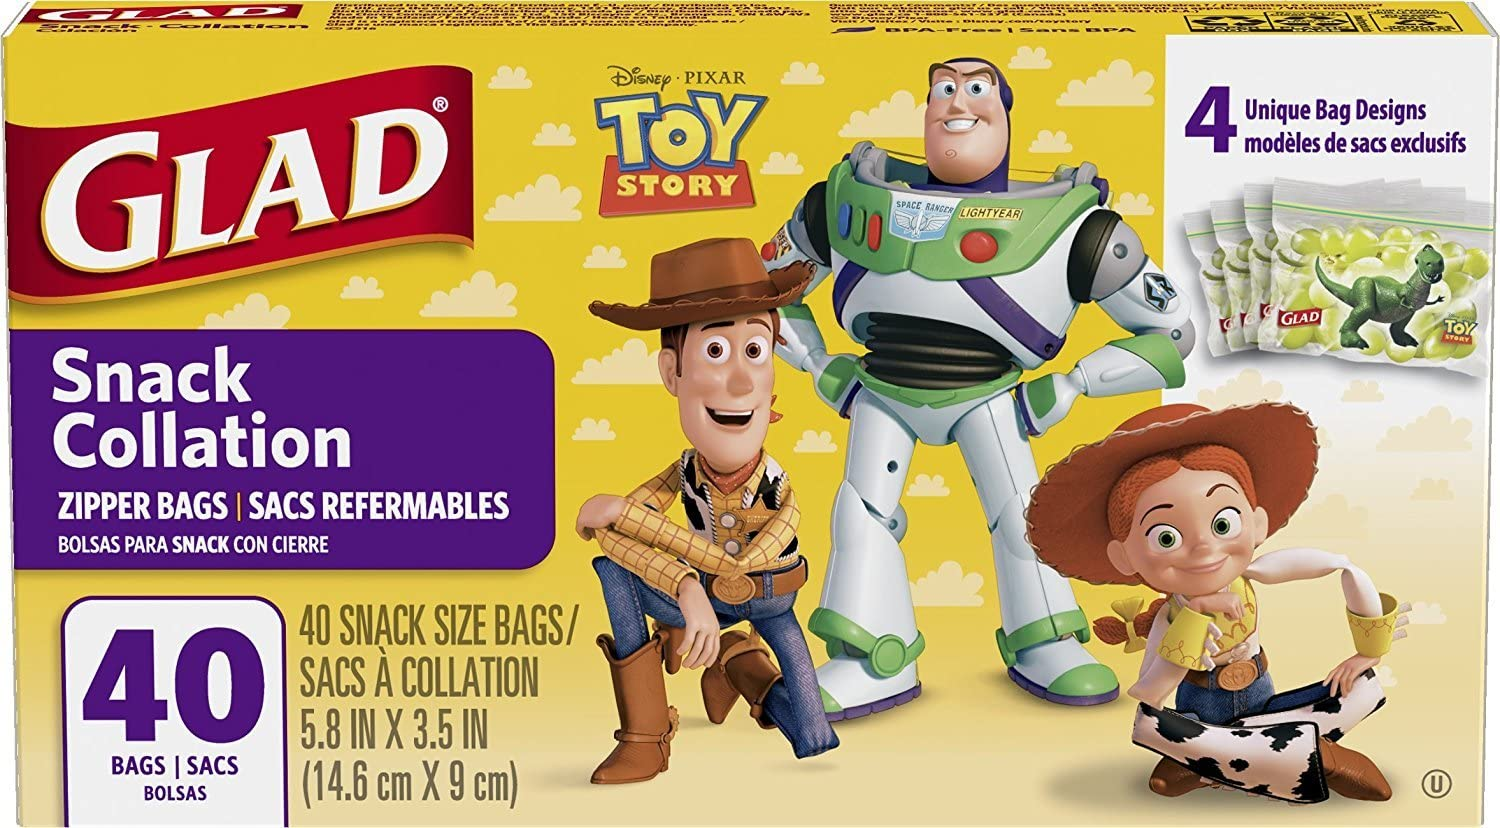 2 Pk. Glad Food Storage Bags, Snack Size Zipper Bags, Toy Story, 40 Count (80 Bags Total)